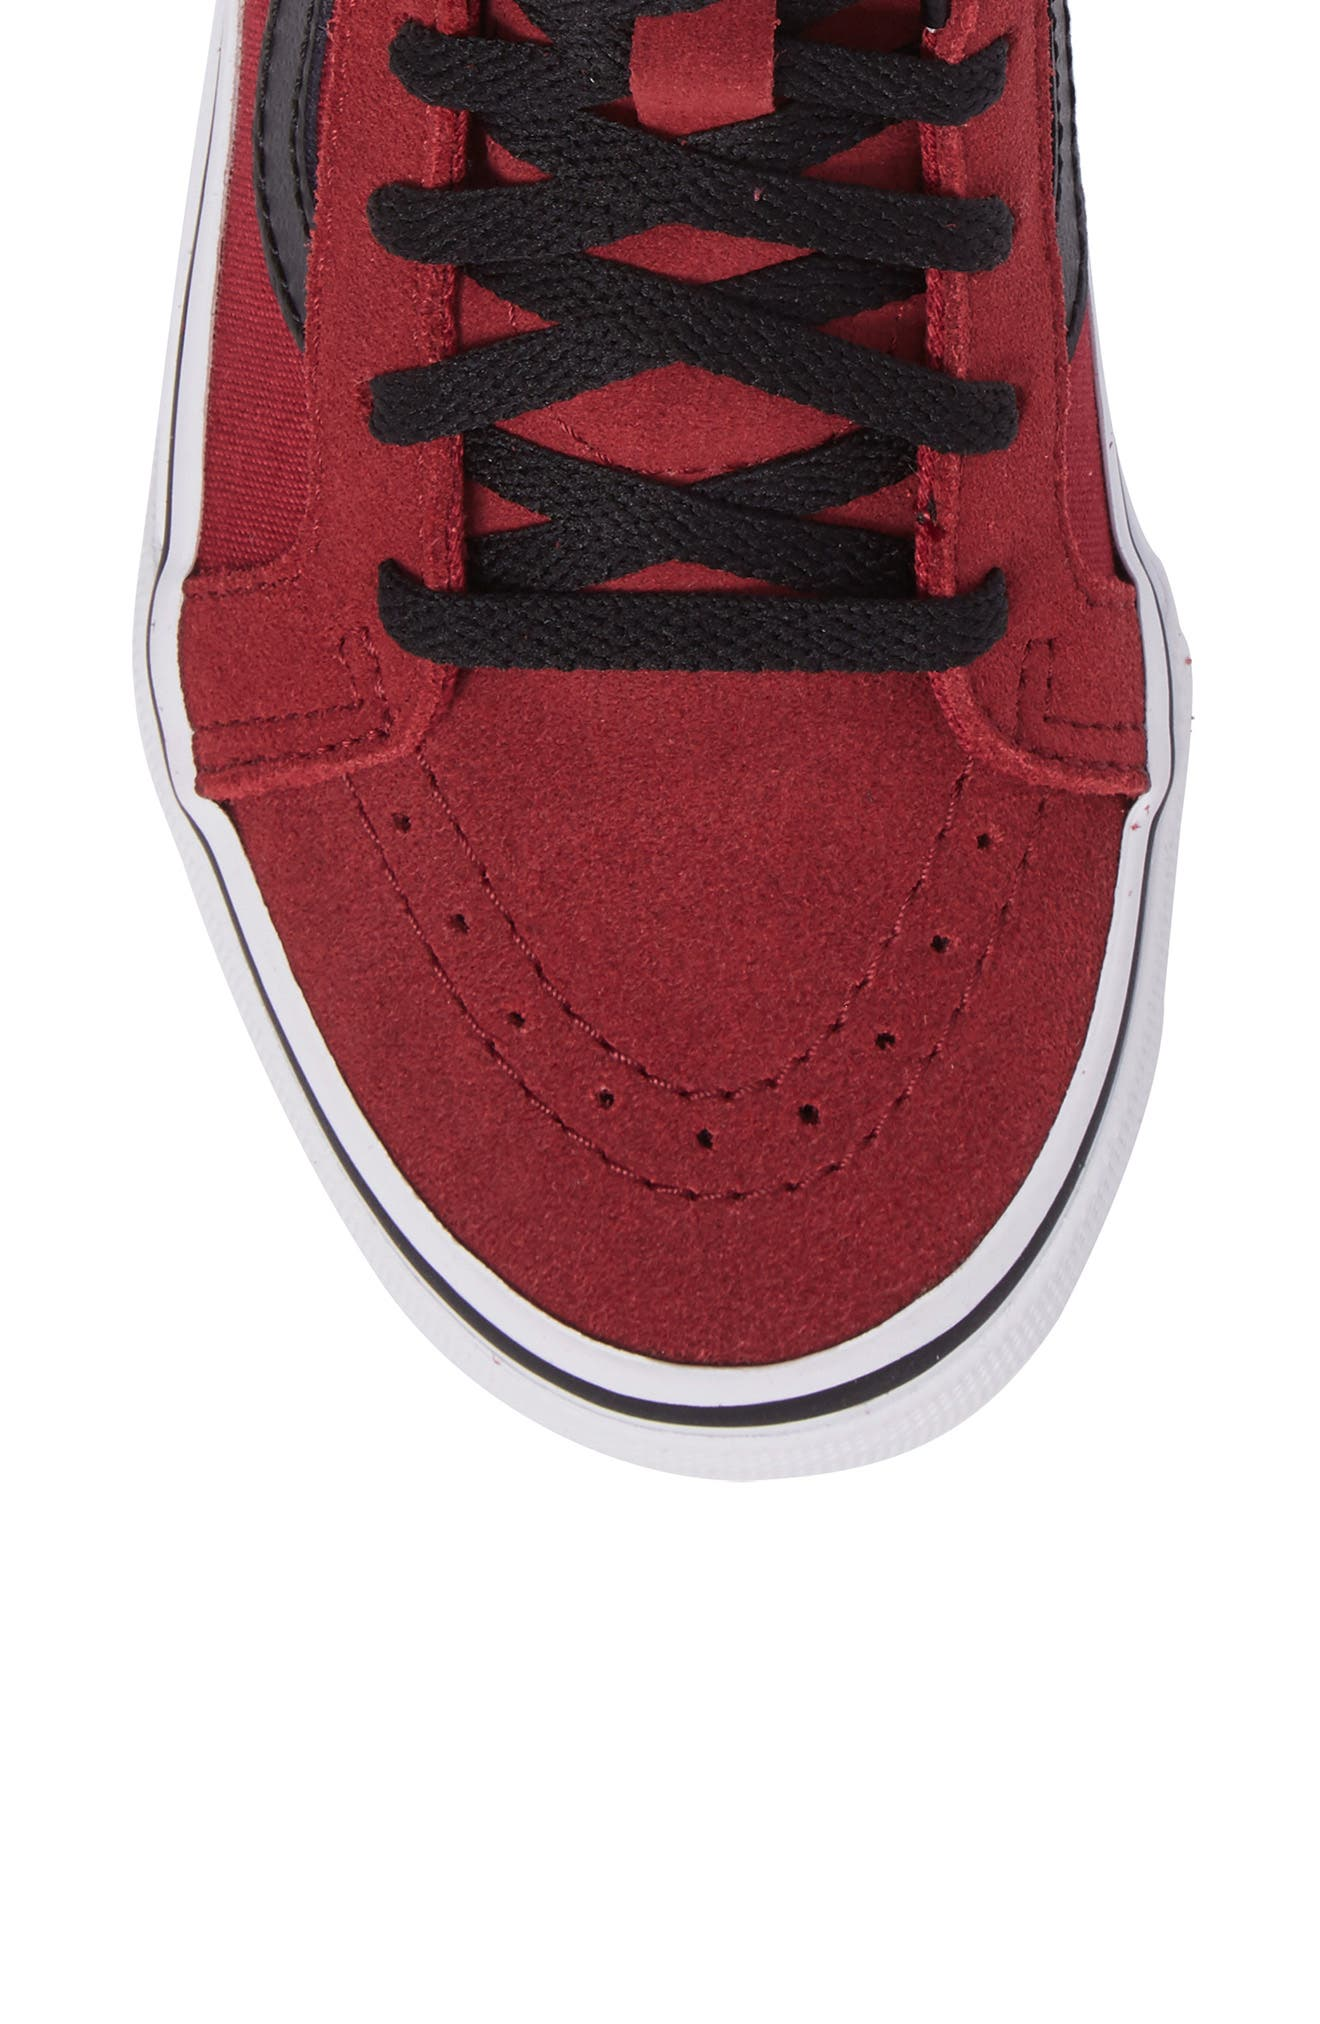 SK8-Hi Zip Sneaker,                             Alternate thumbnail 5, color,                             TIBETAN RED/ BLACK